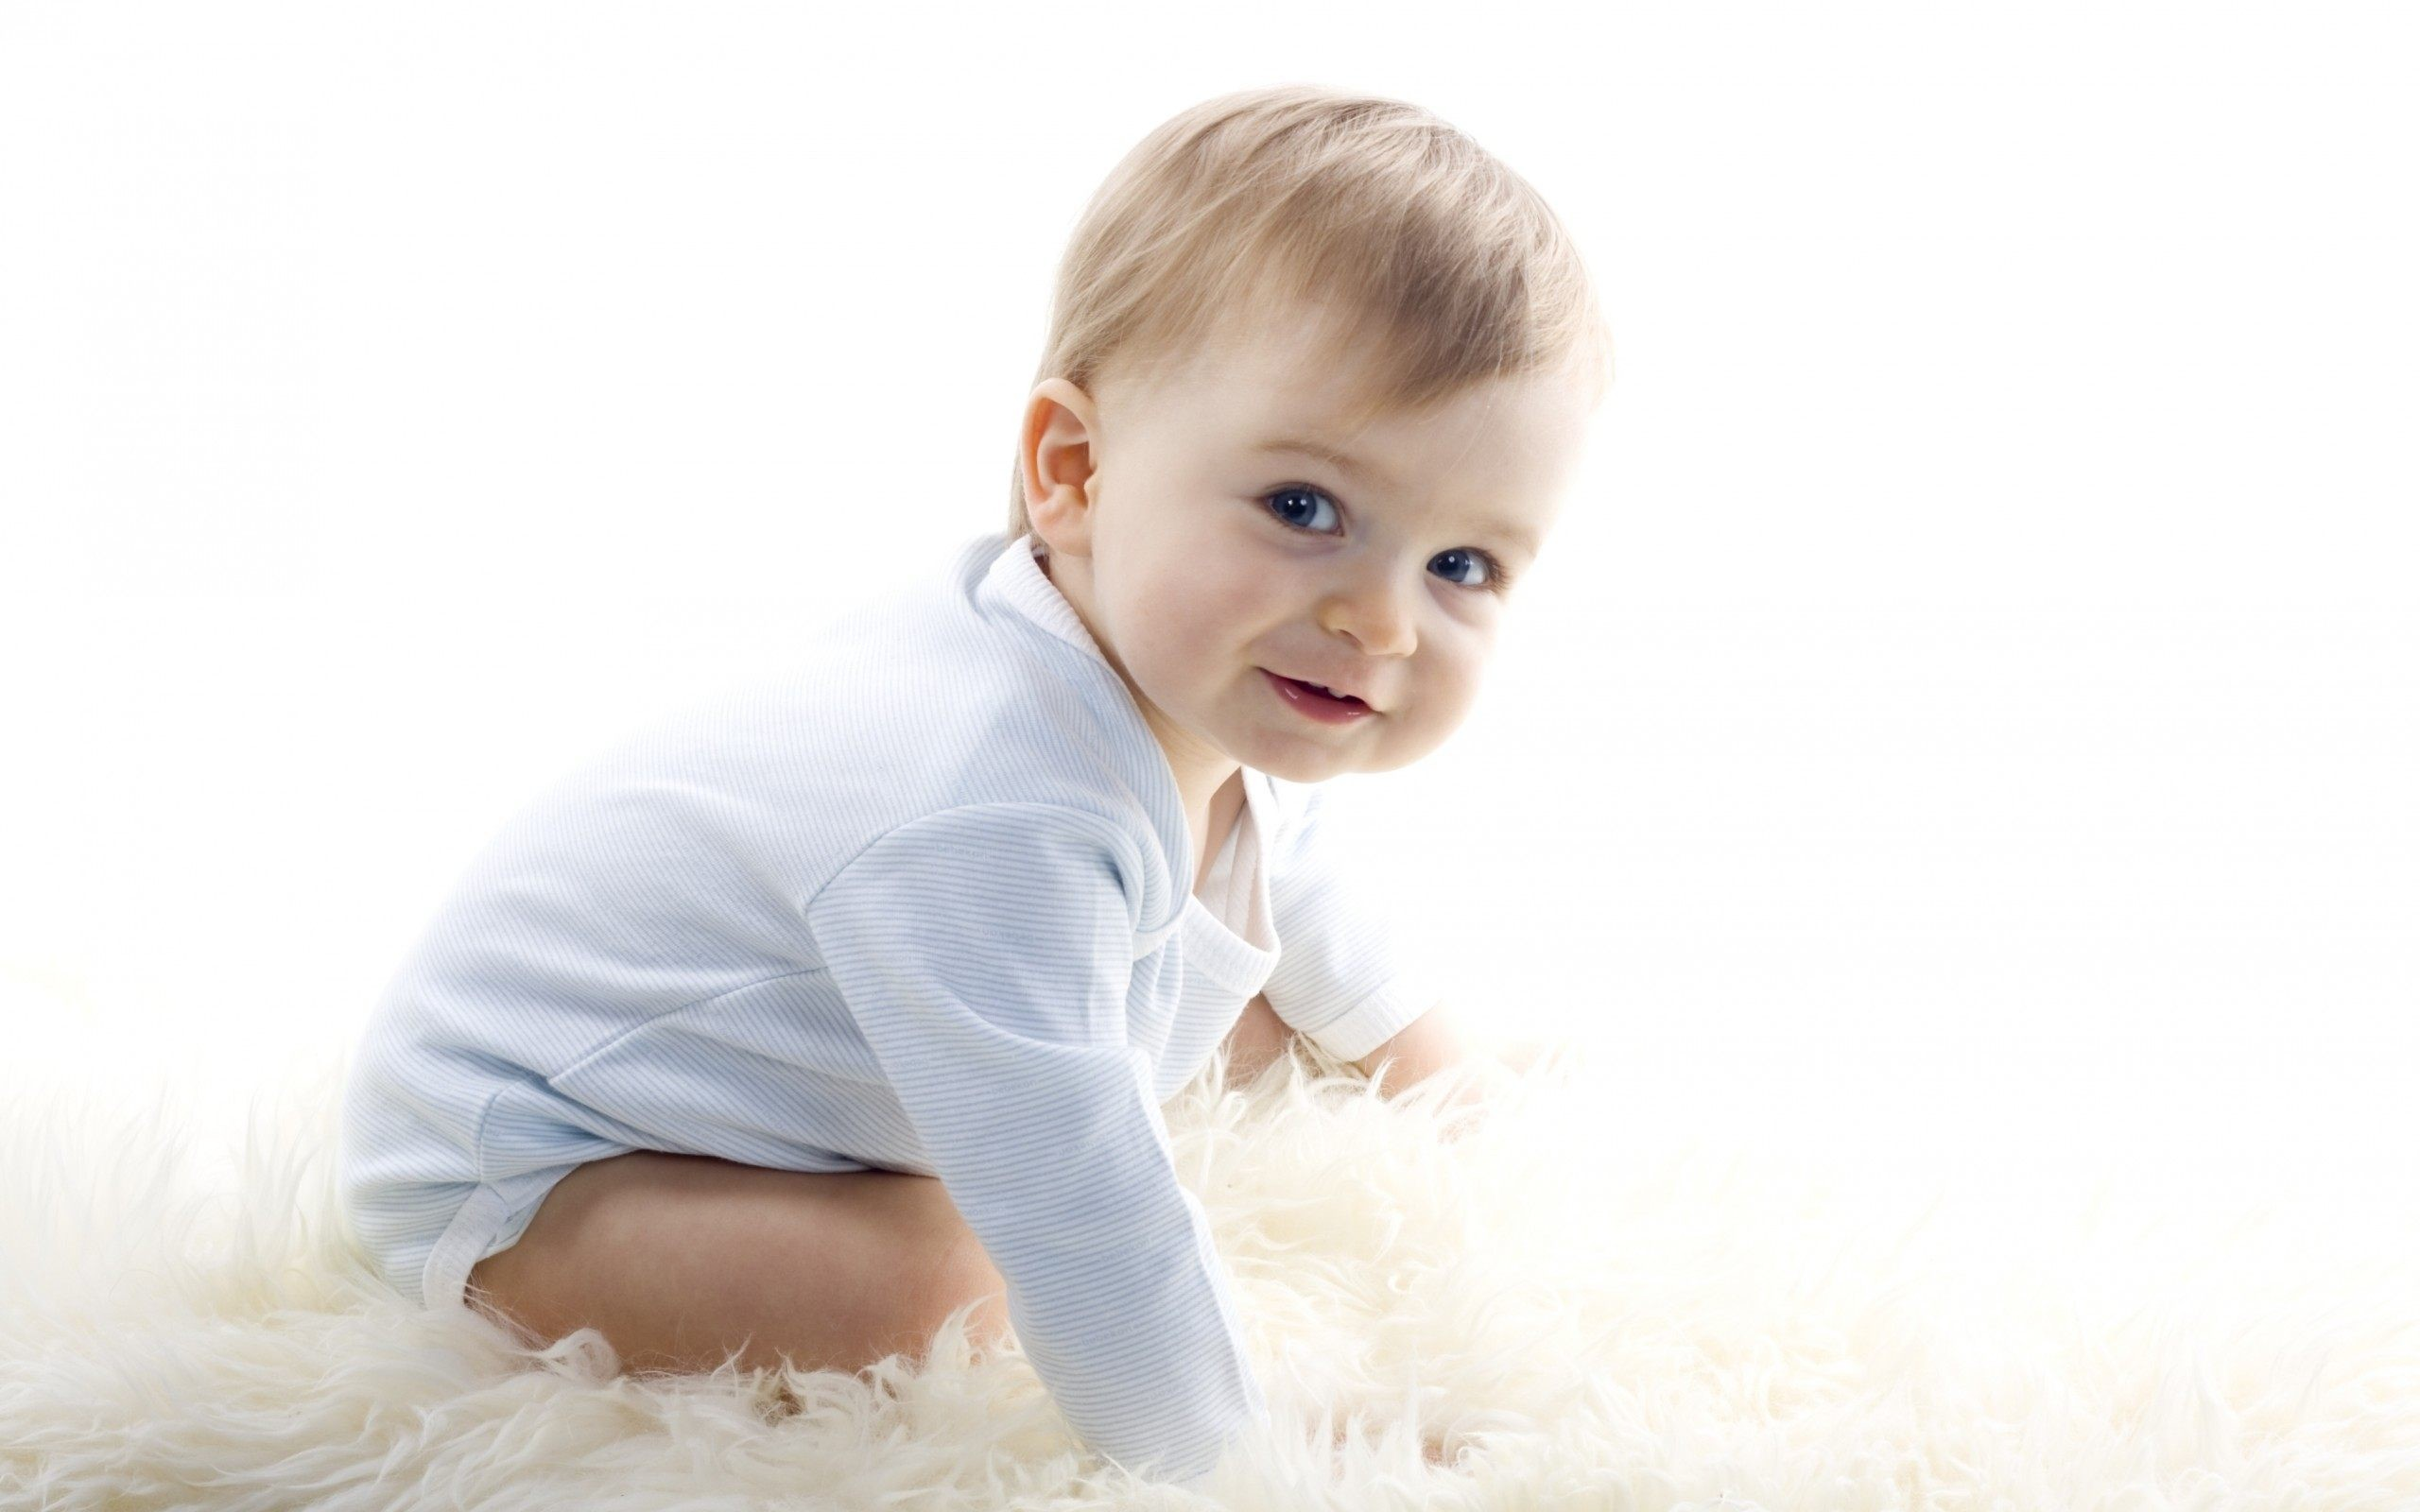 cute baby boy wallpapers ·①